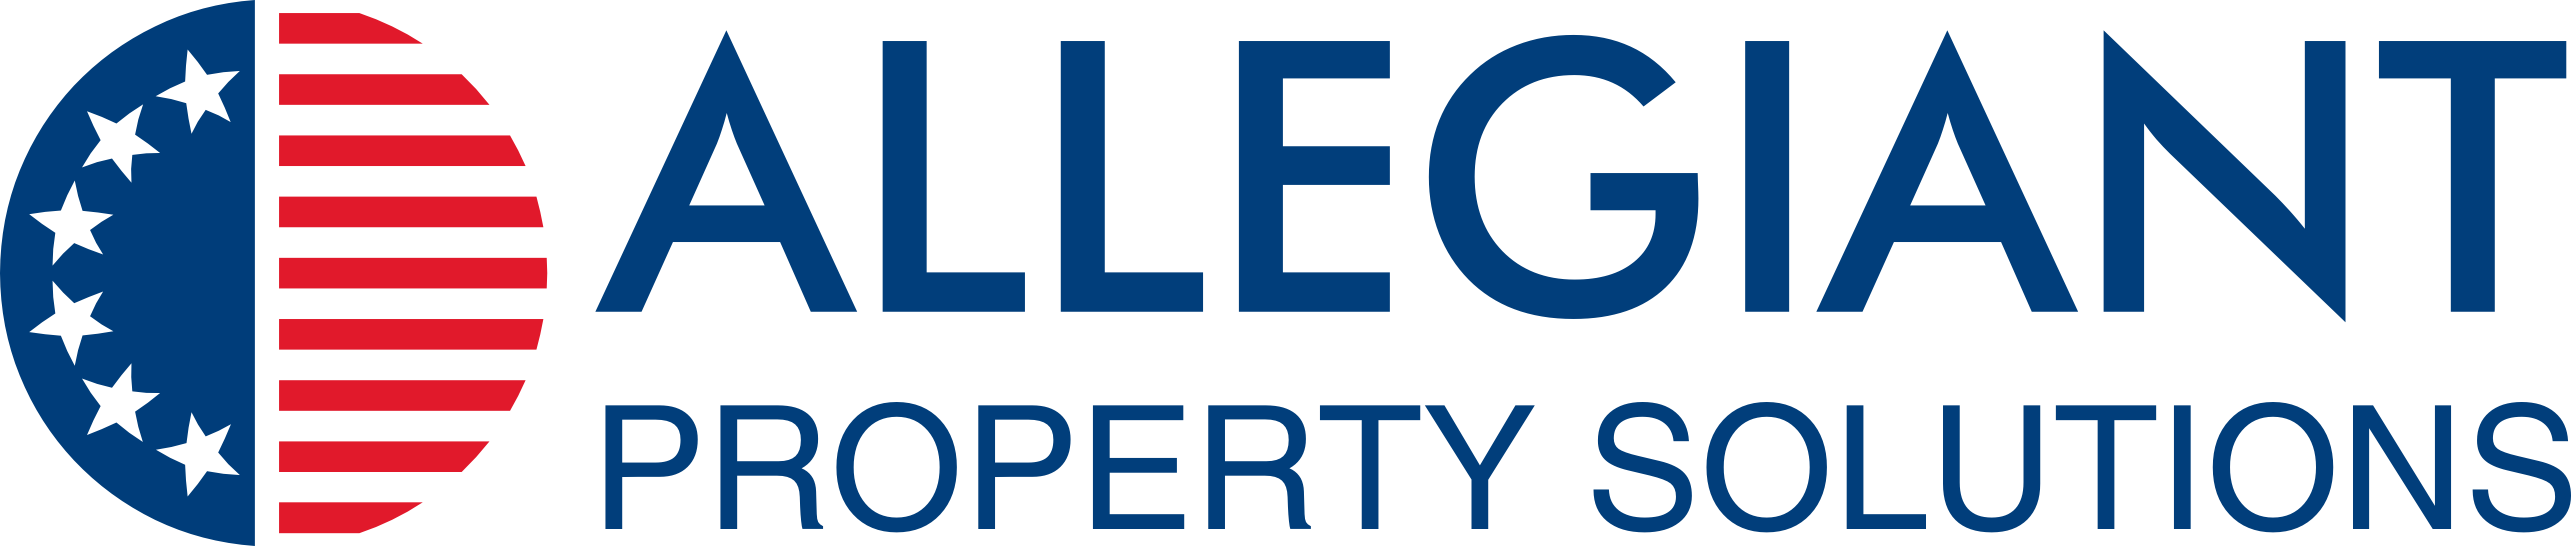 Allegiant property solution